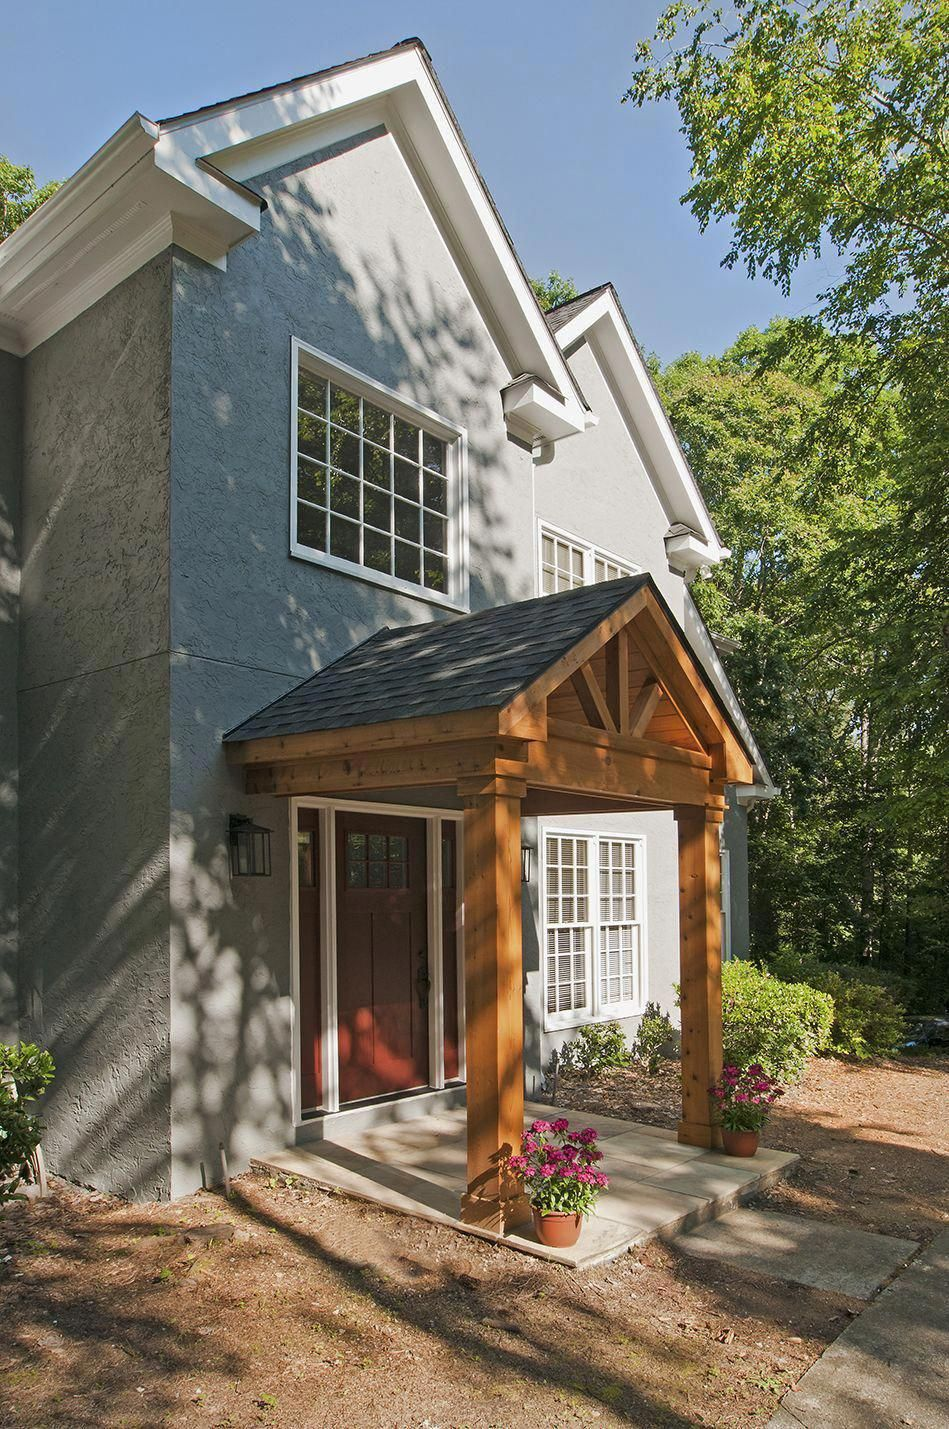 Pin By Jessica Bandy On House In 2020 House With Porch Gable